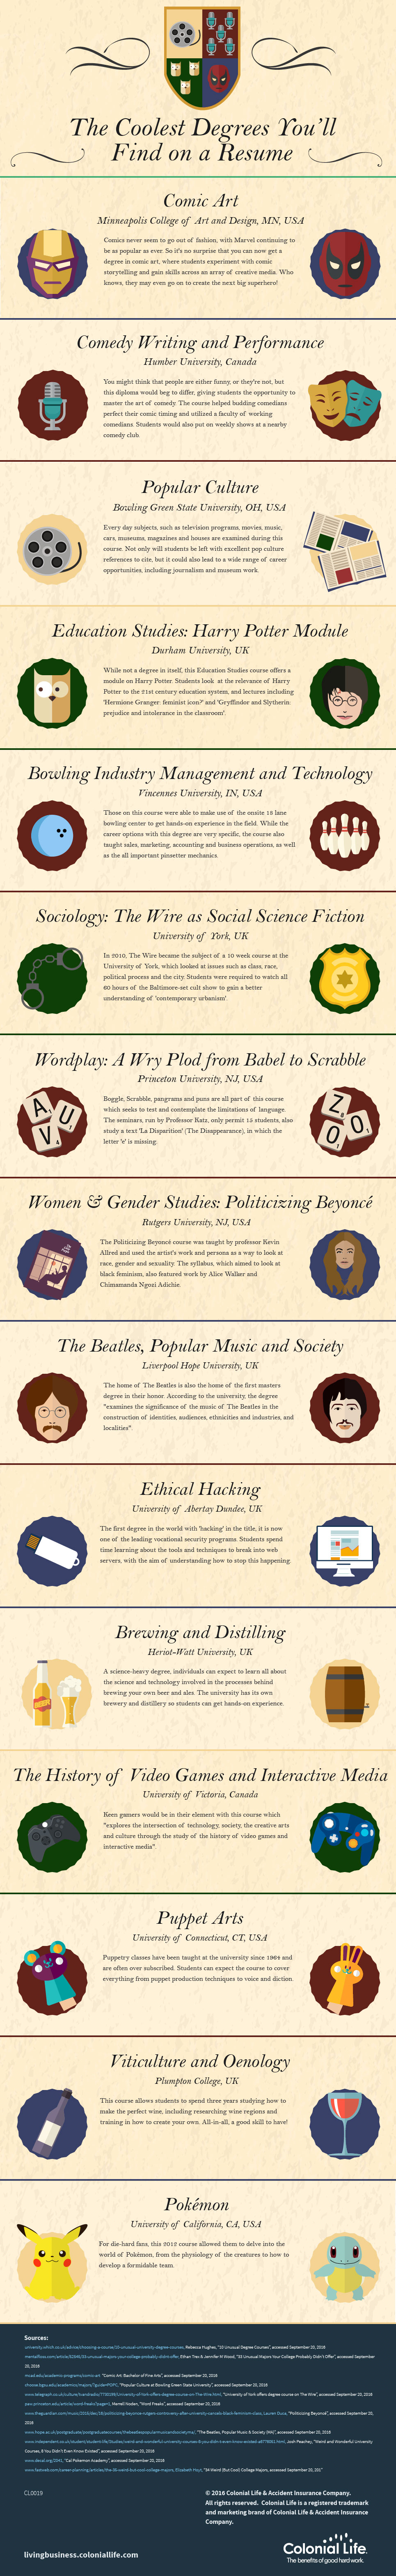 The List of New, Unusual and Rare College Degrees - Infographic